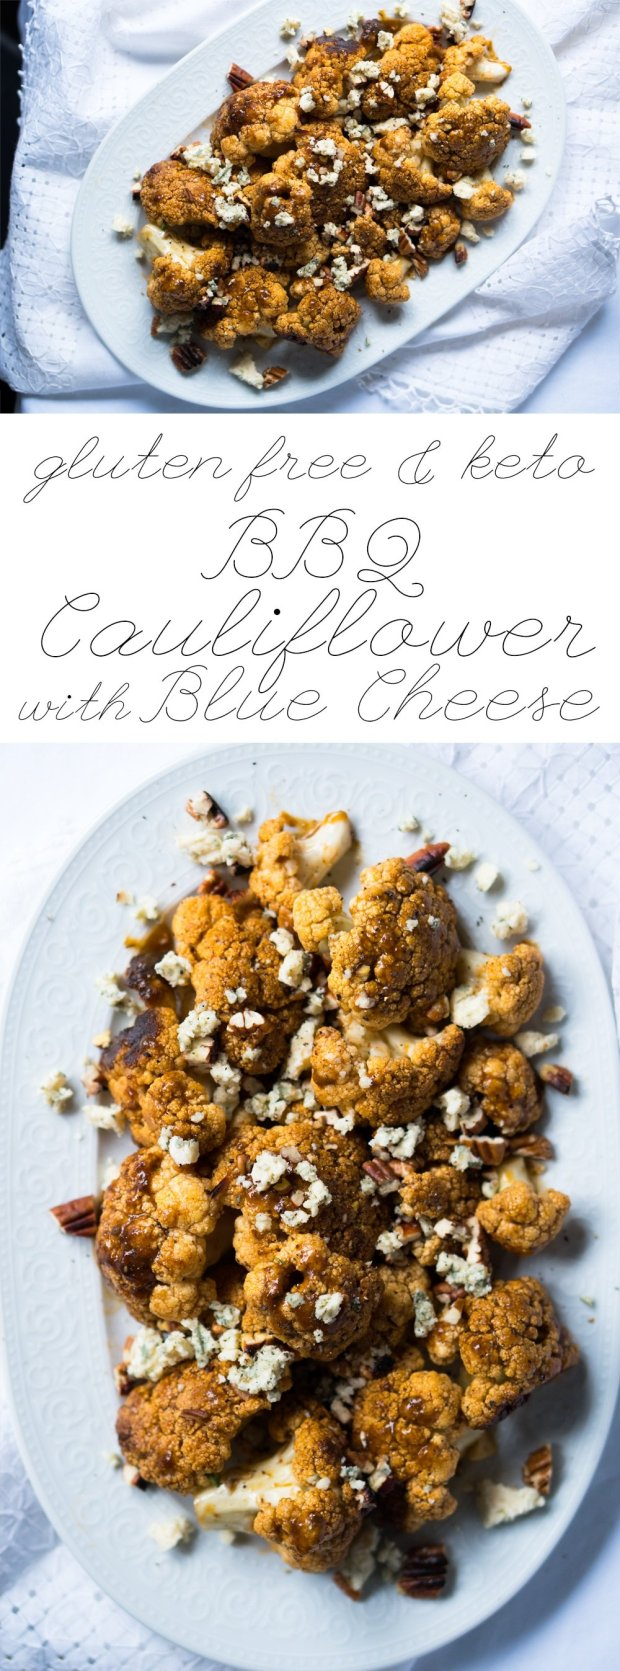 BBQ Cauliflower with Creamy Blue Cheese ? Gluten Free & Ketogenic